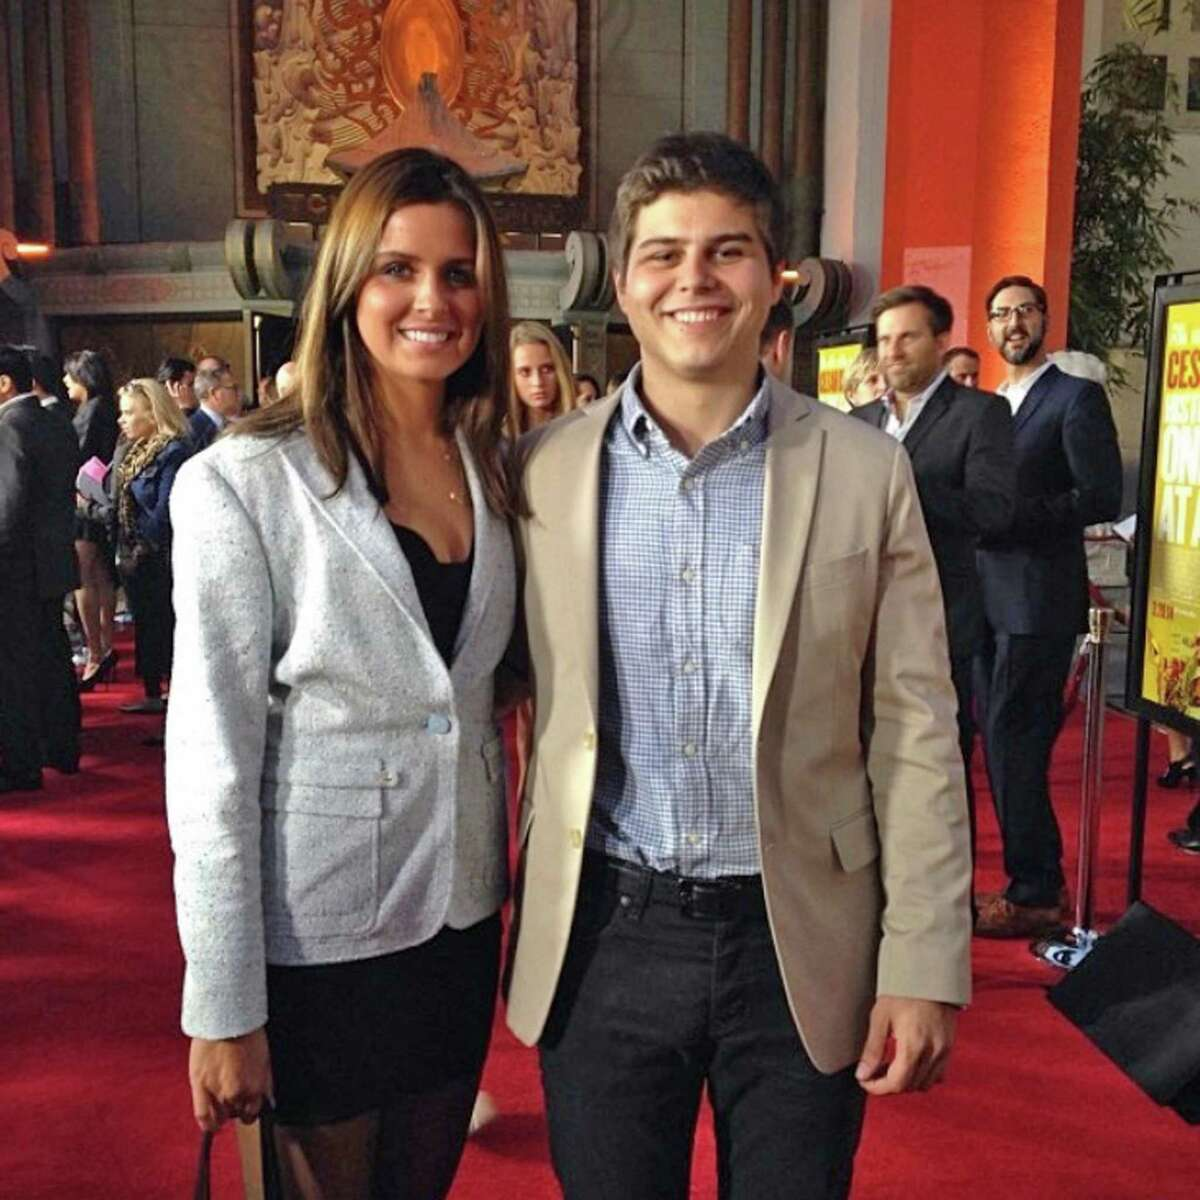 Olenka Polak and her brother Adam, who grew up in Riverside and founded successful app company myLingo.